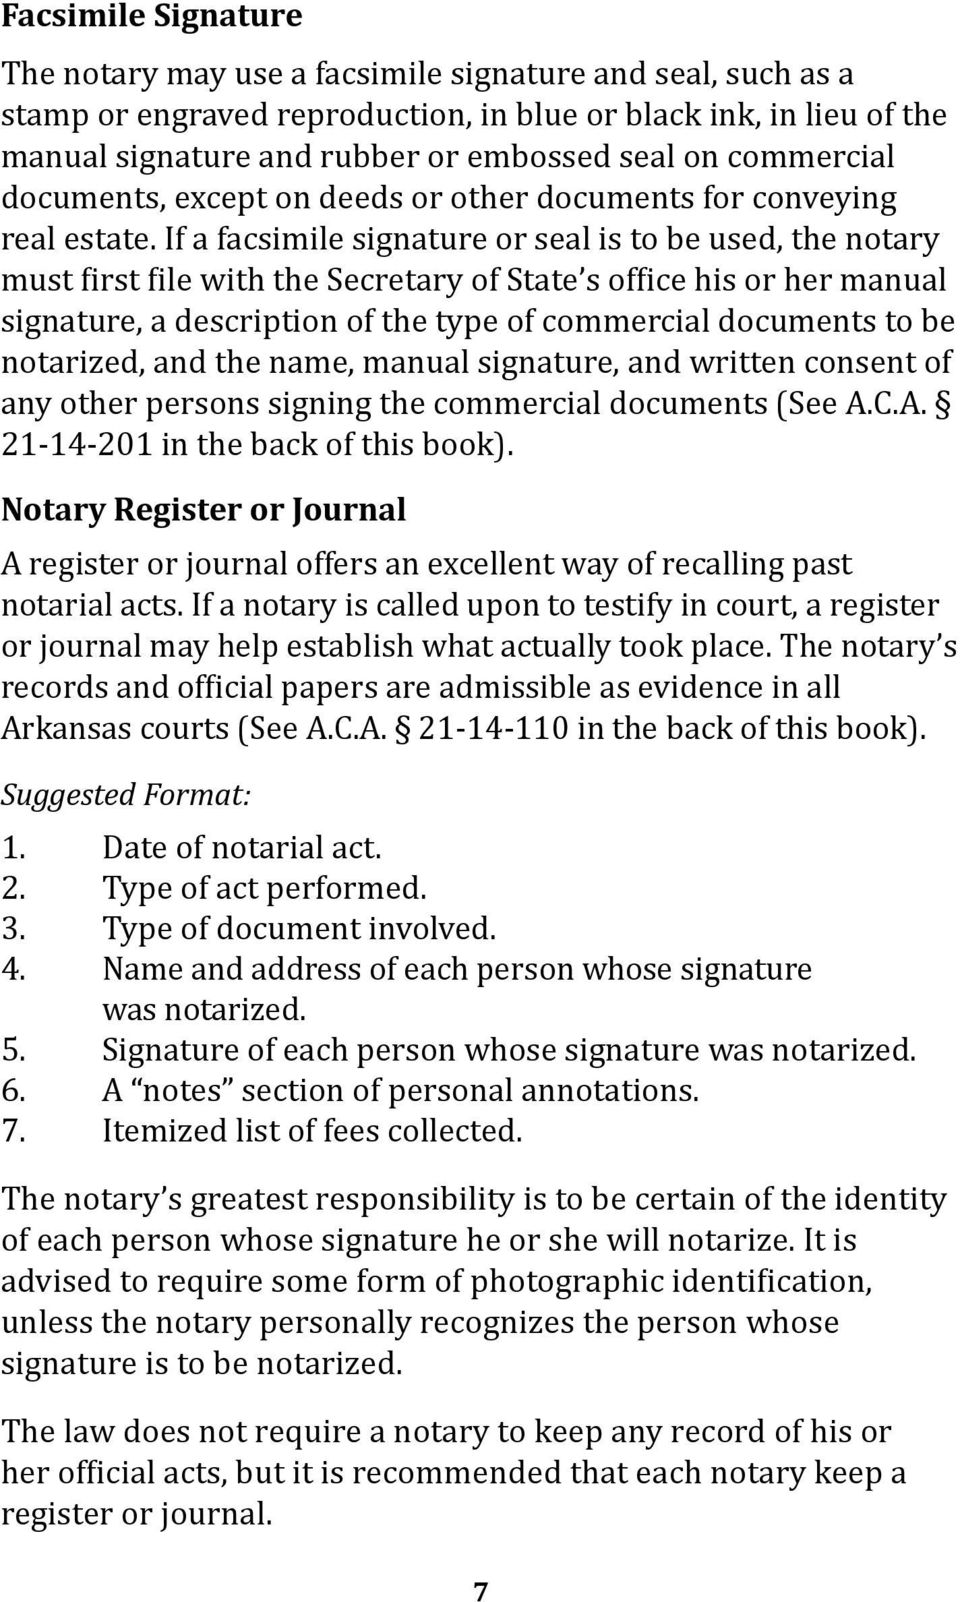 If a facsimile signature or seal is to be used, the notary must first file with the Secretary of State s office his or her manual signature, a description of the type of commercial documents to be